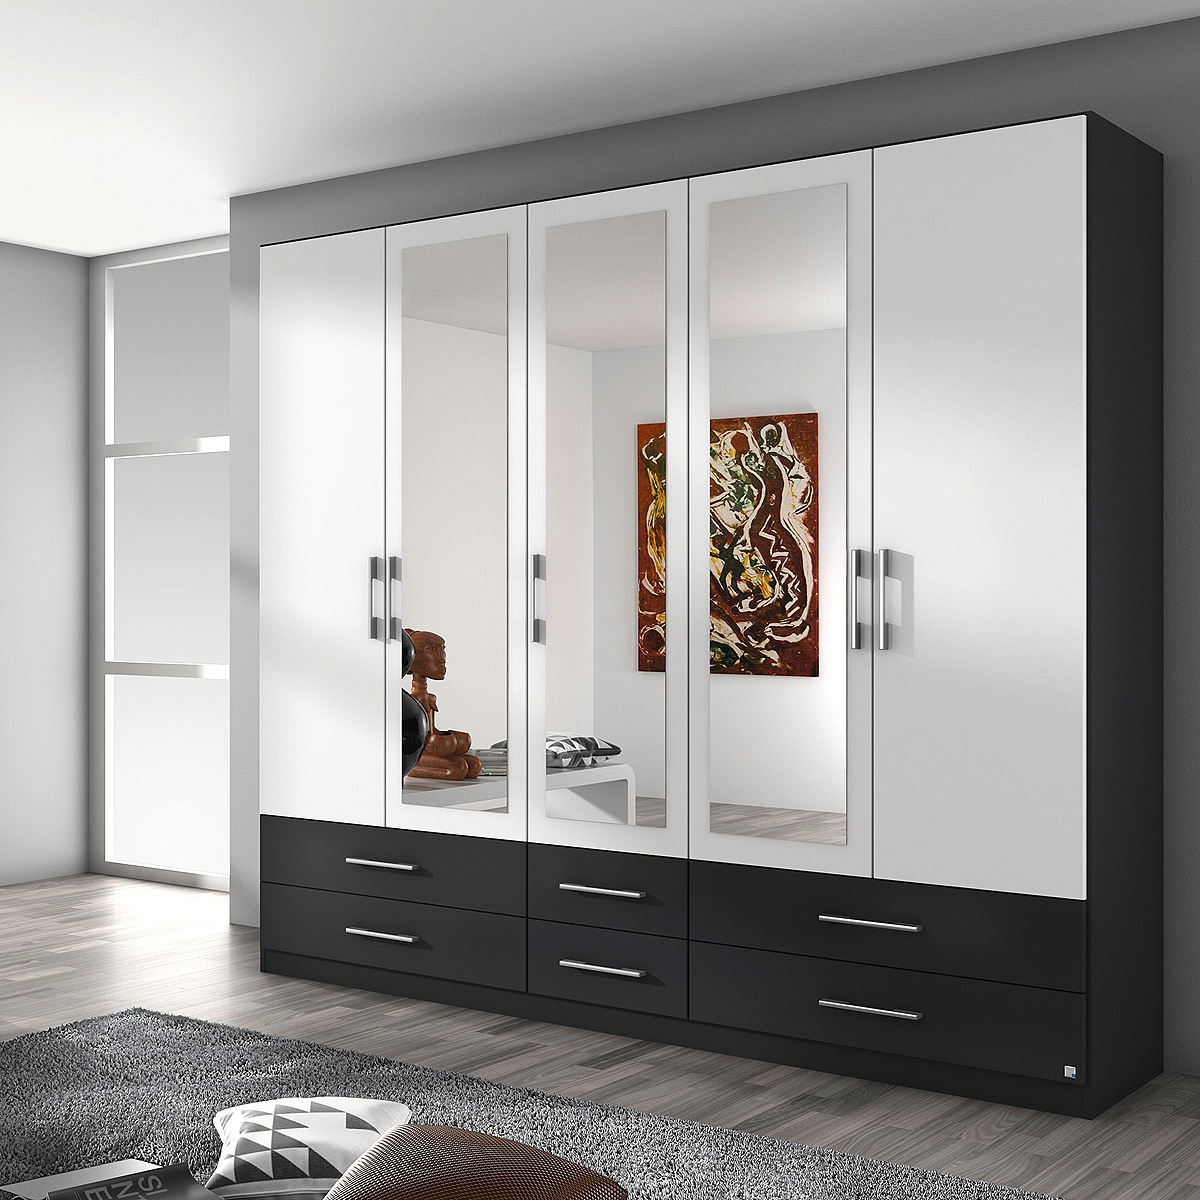 kleiderschrank grau. Black Bedroom Furniture Sets. Home Design Ideas